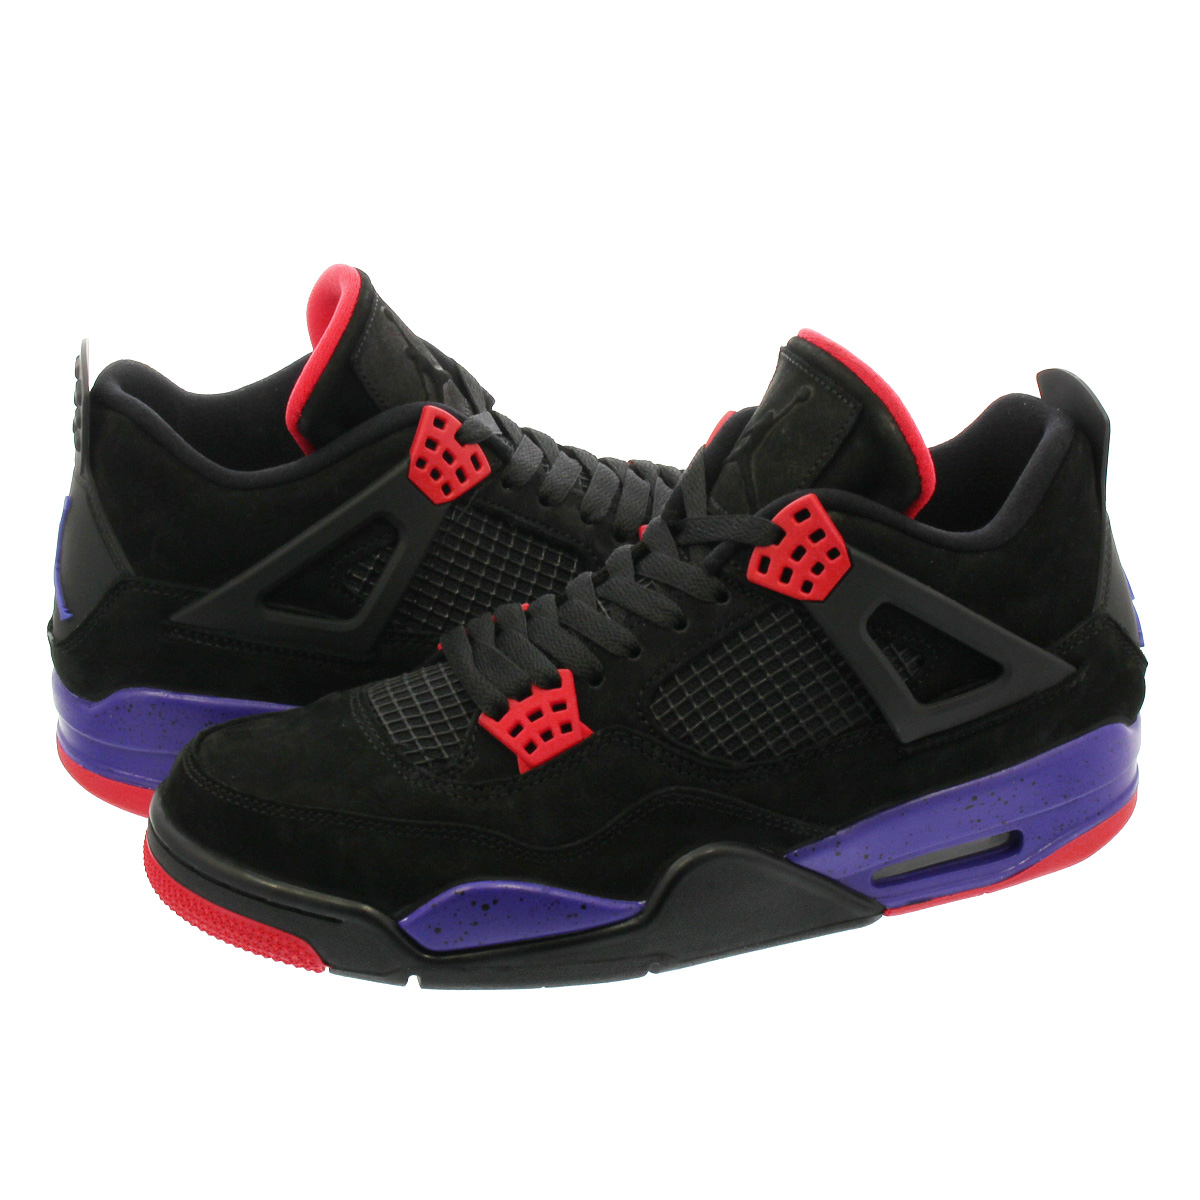 57bdc964bf4c09 NIKE AIR JORDAN 4 RETRO Nike Air Jordan 4 nostalgic NRG BLACK COURT PURPLE UNIVERSITY  RED aq3816-065